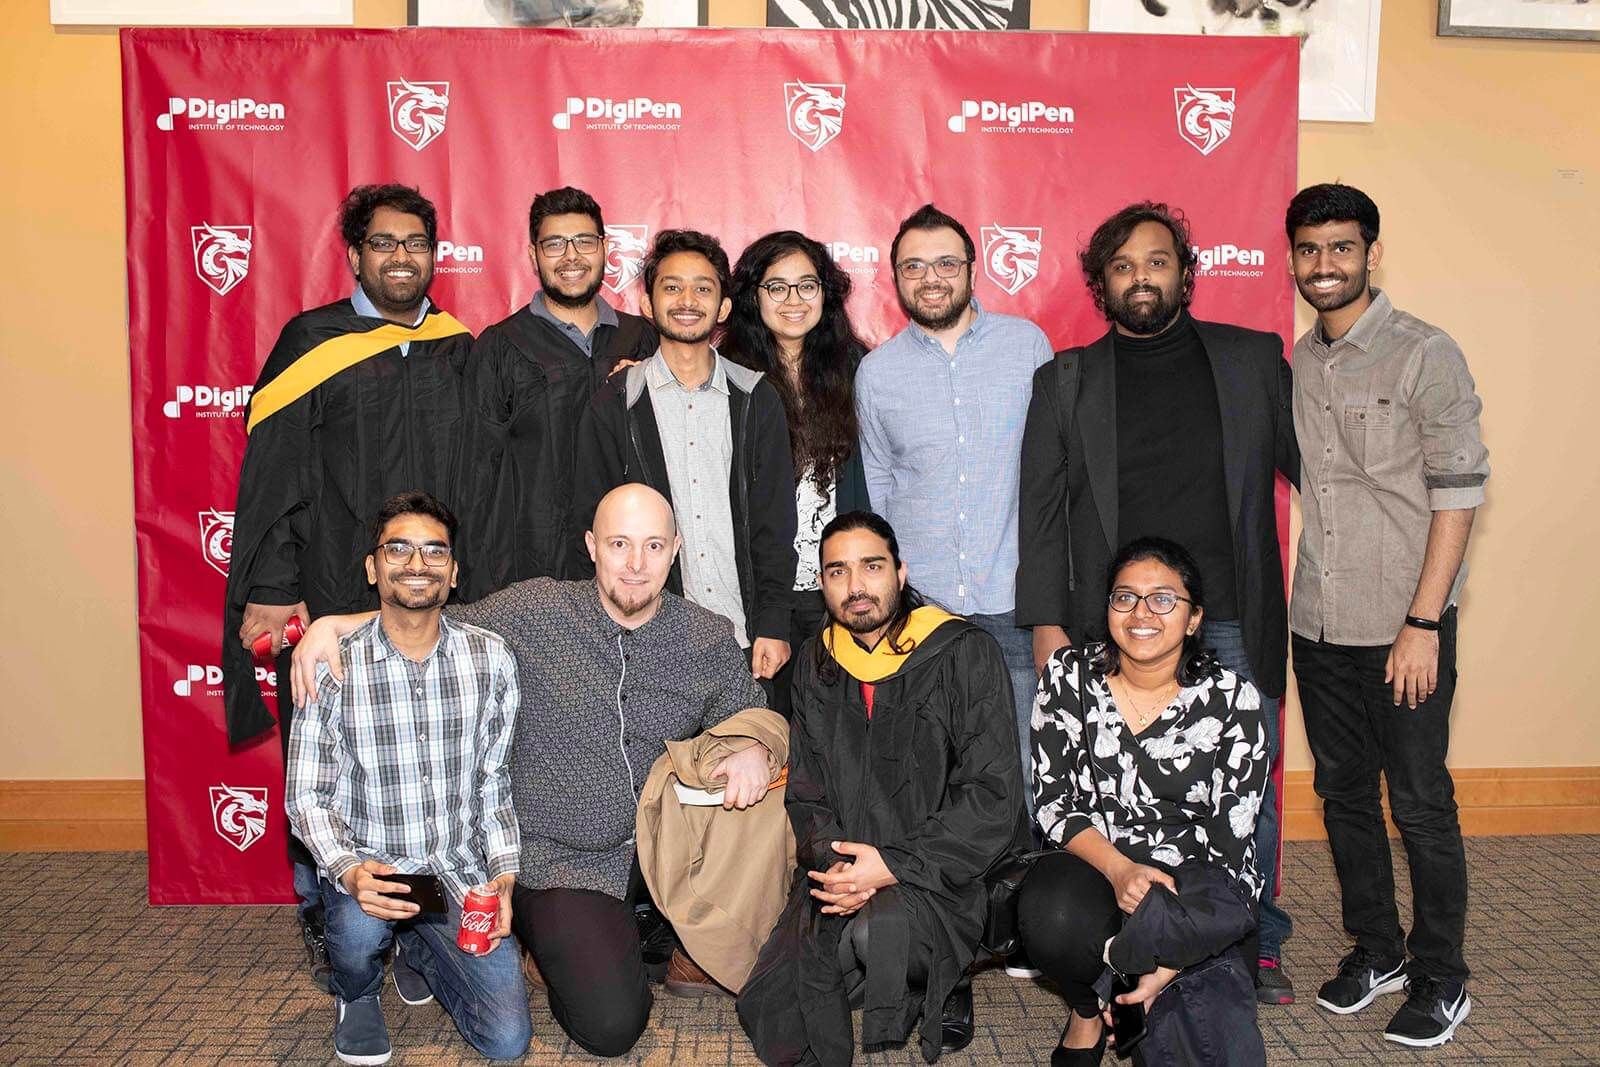 A group of people, some in graduation robes pose in front of a red backdrop bearing DigiPen's logo and name.